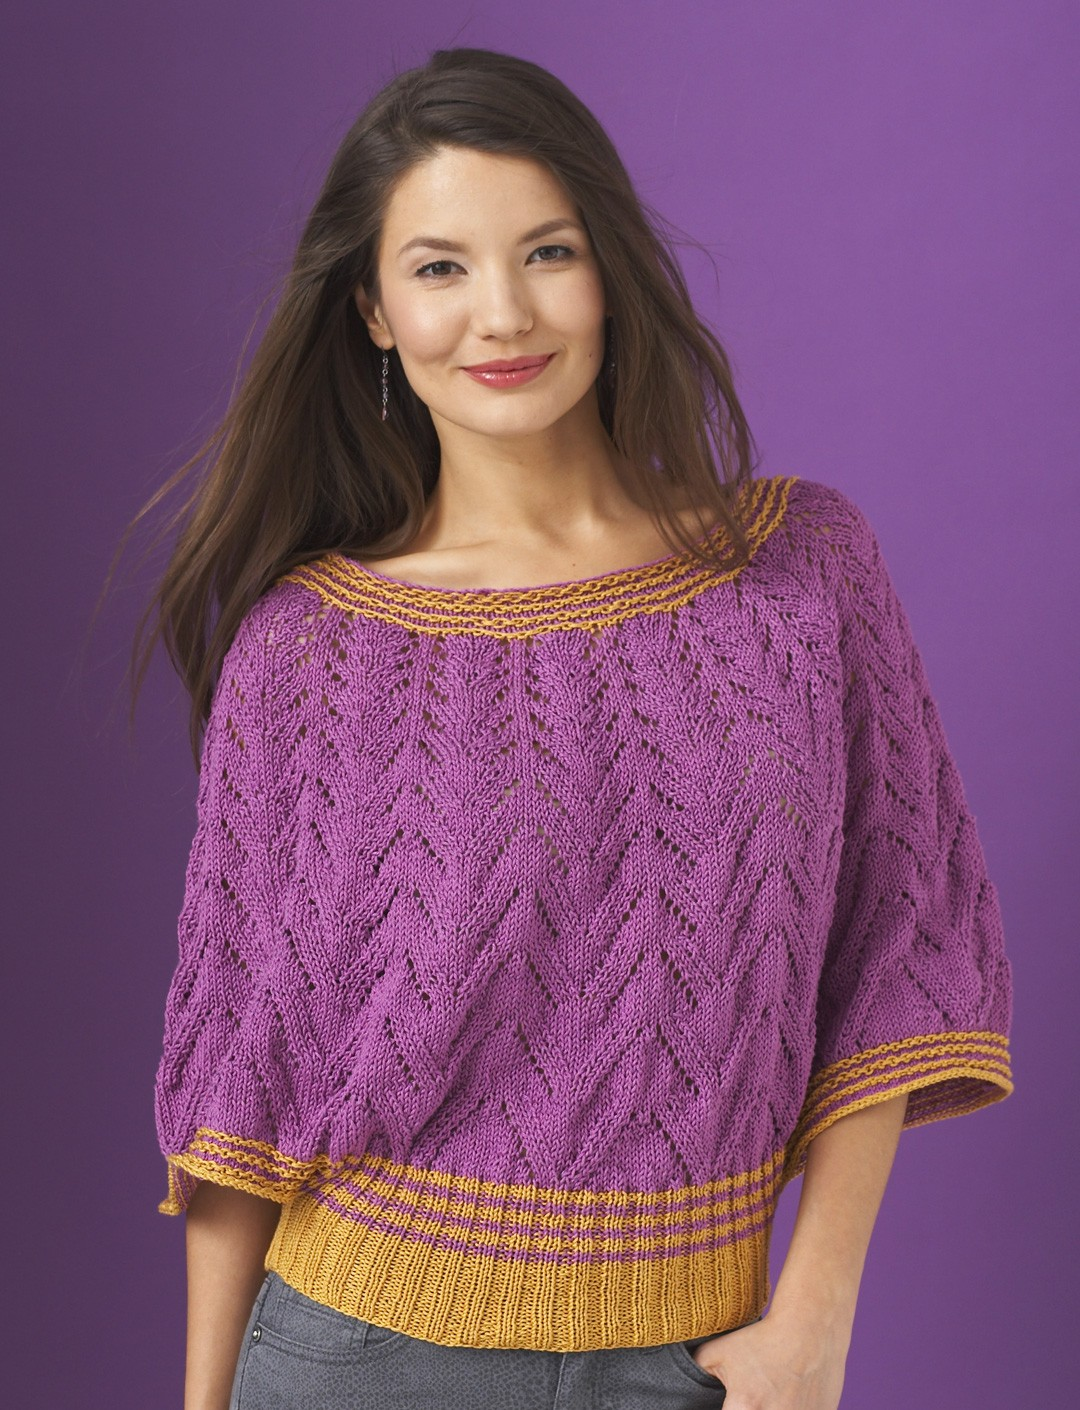 Knit Top Patterns : Patons Butterfly Top, Knit Pattern Yarnspirations